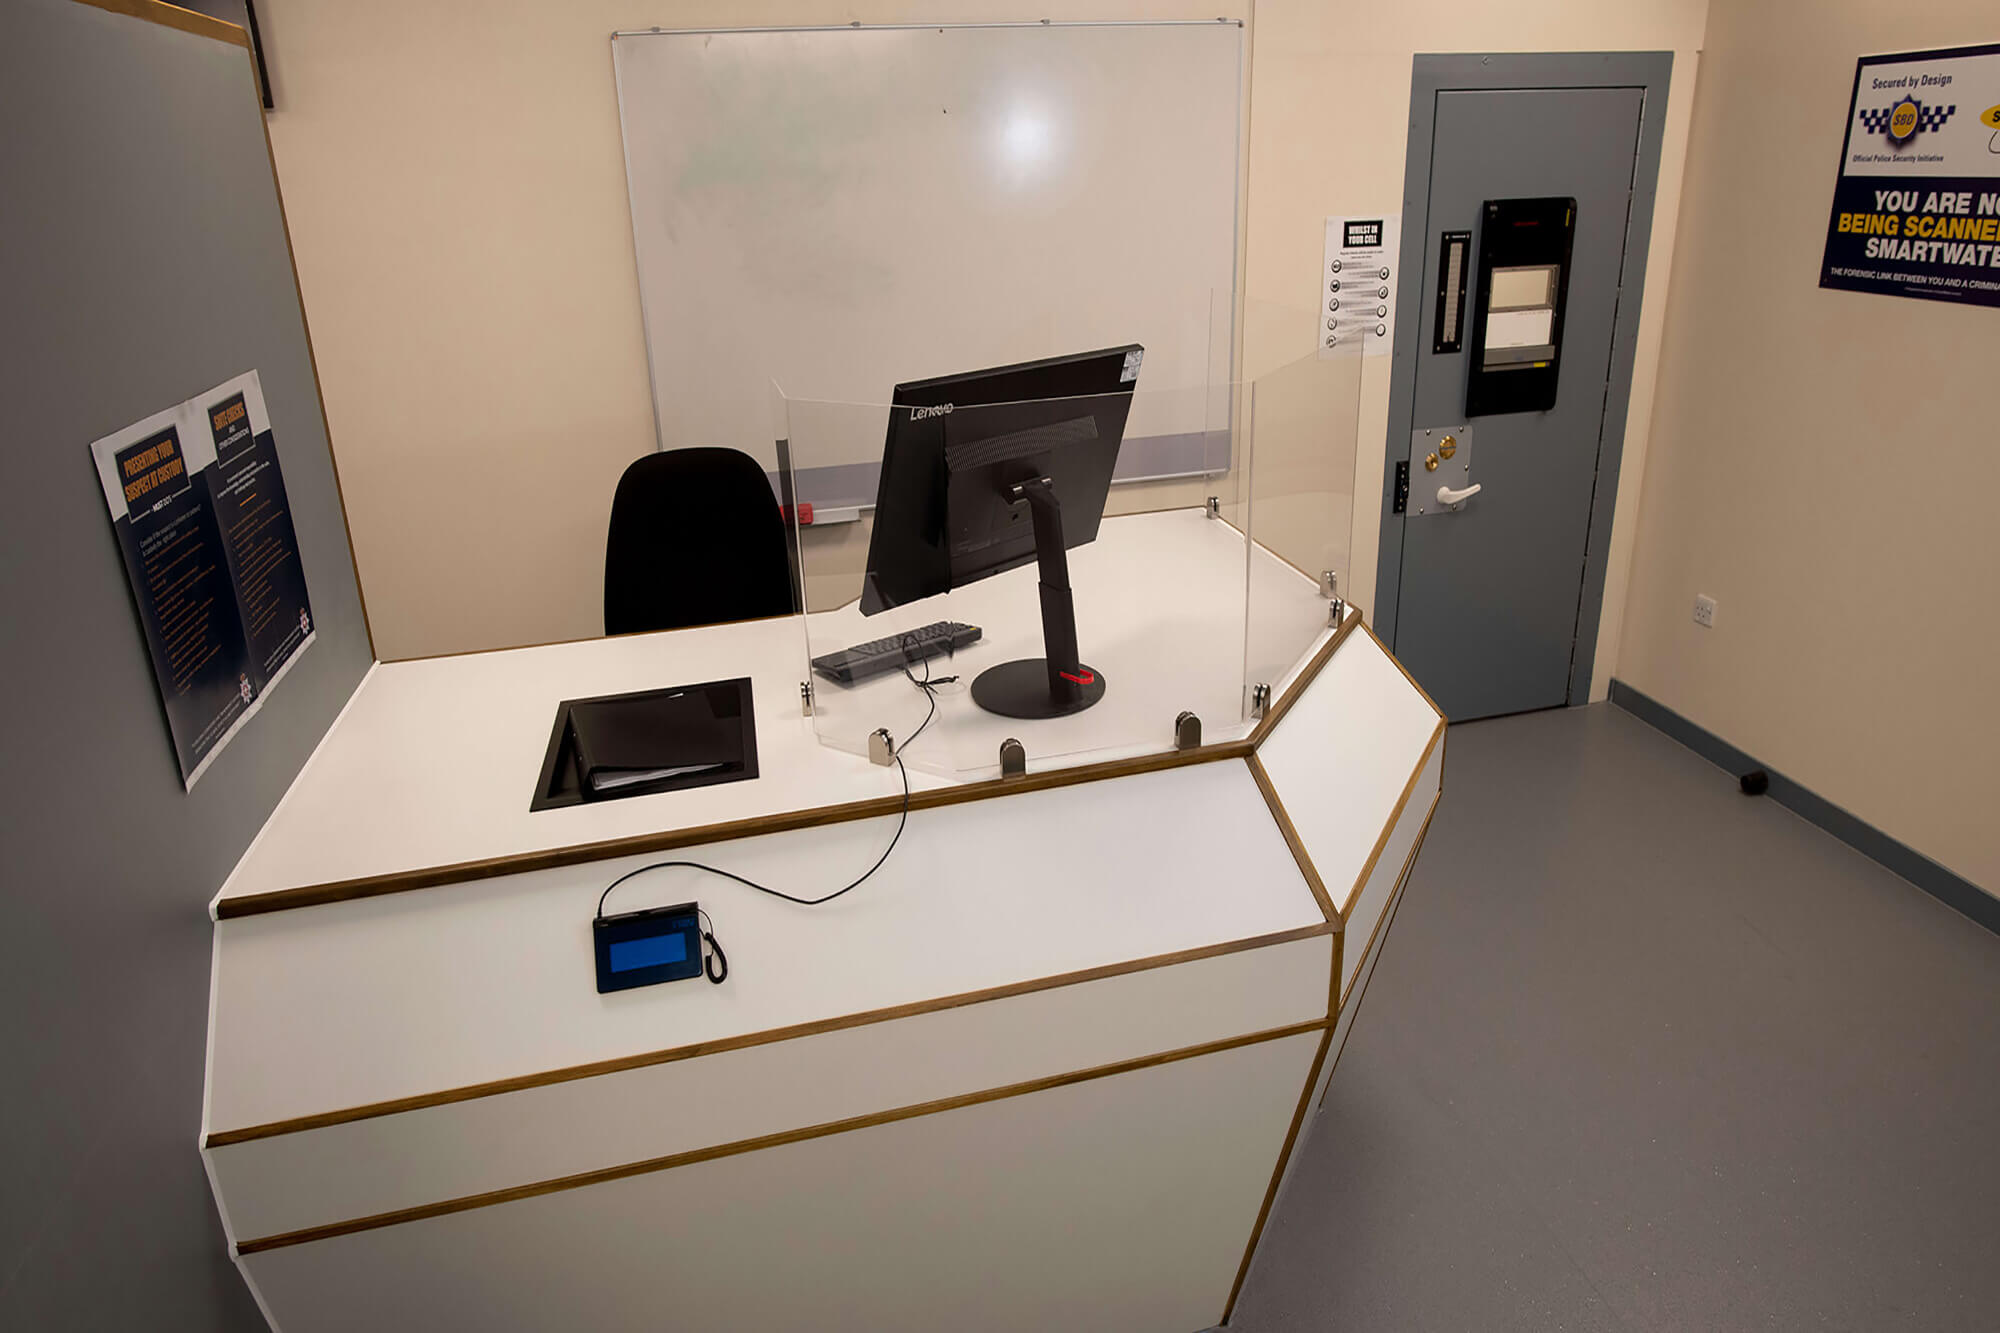 A look around the Custody Suite and One Friar Gate Square, the home of the School of Law and Social Sciences